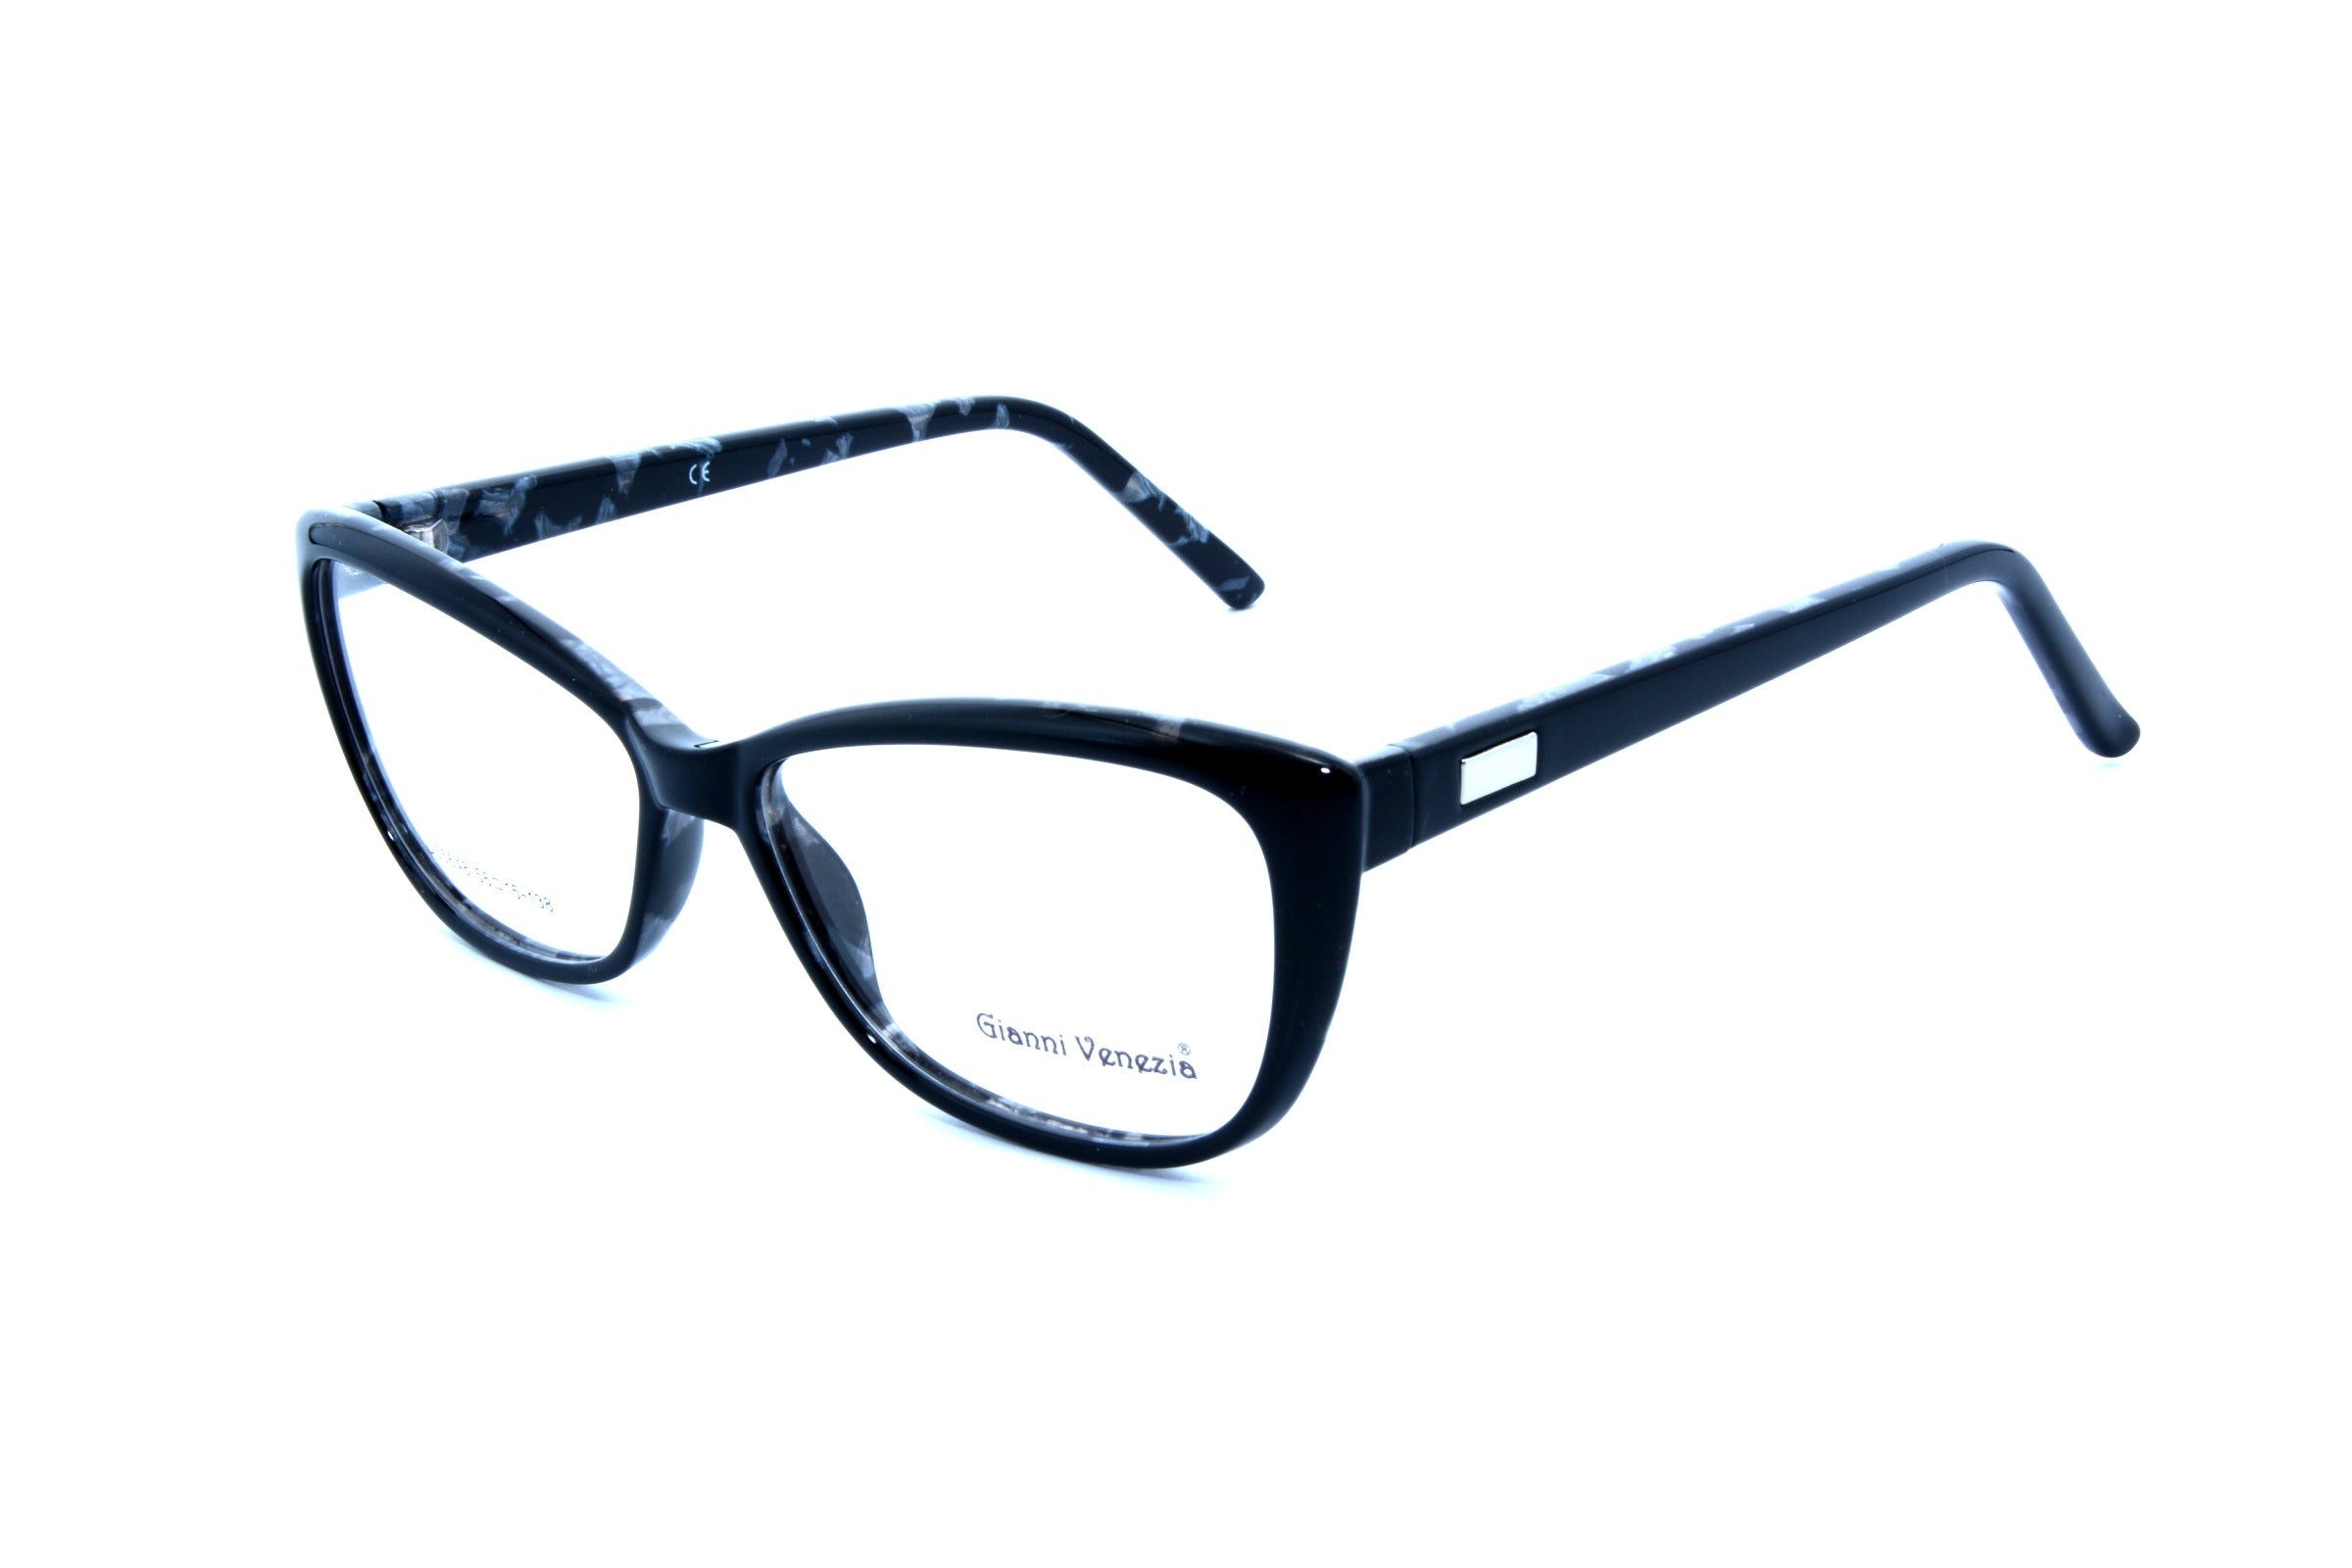 Gianni Vennezia eyewear 35648, C5 - Optics Trading